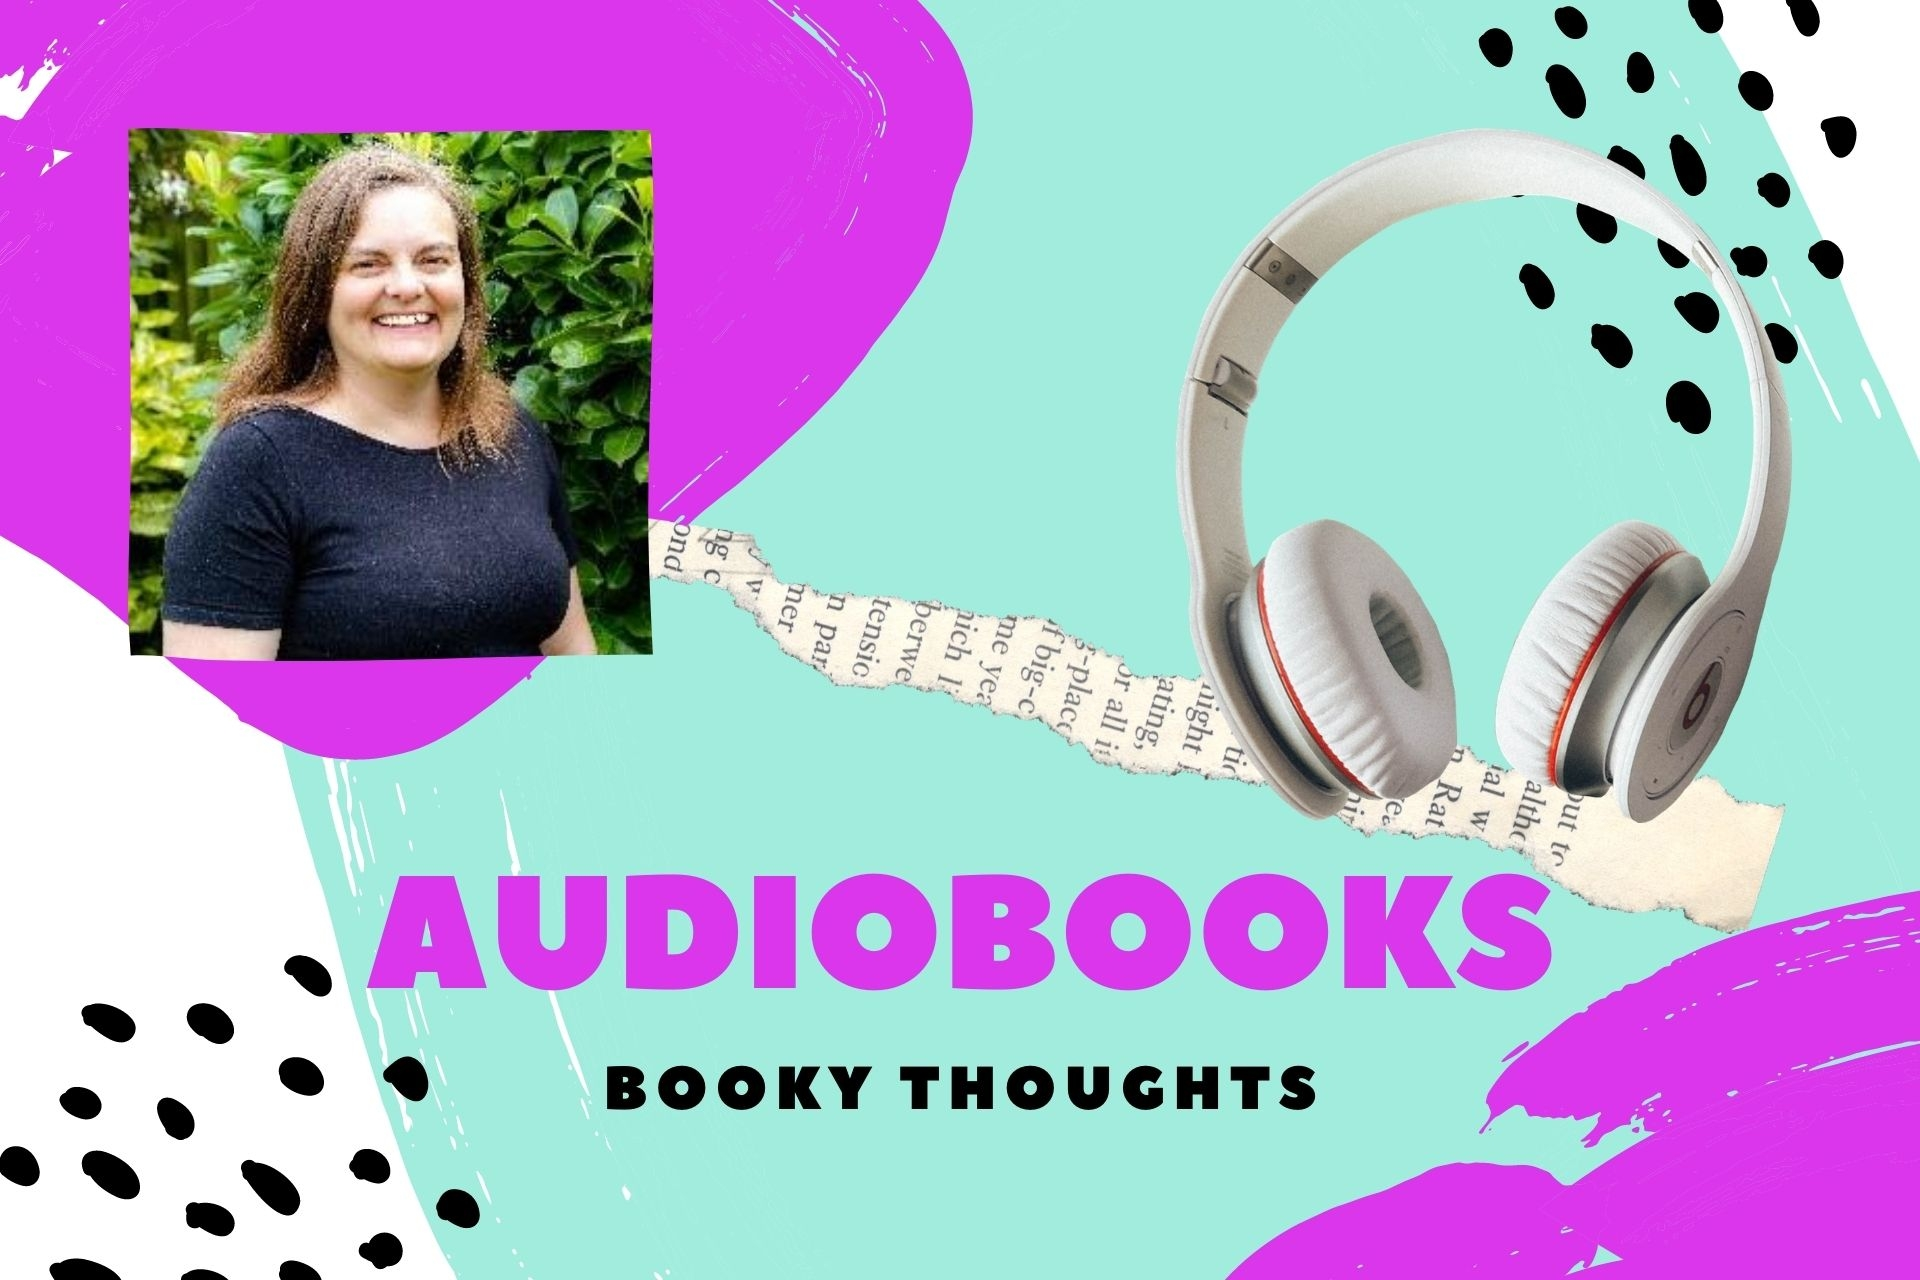 Booky Thoughts - Kerry Bridges: Audiobooks